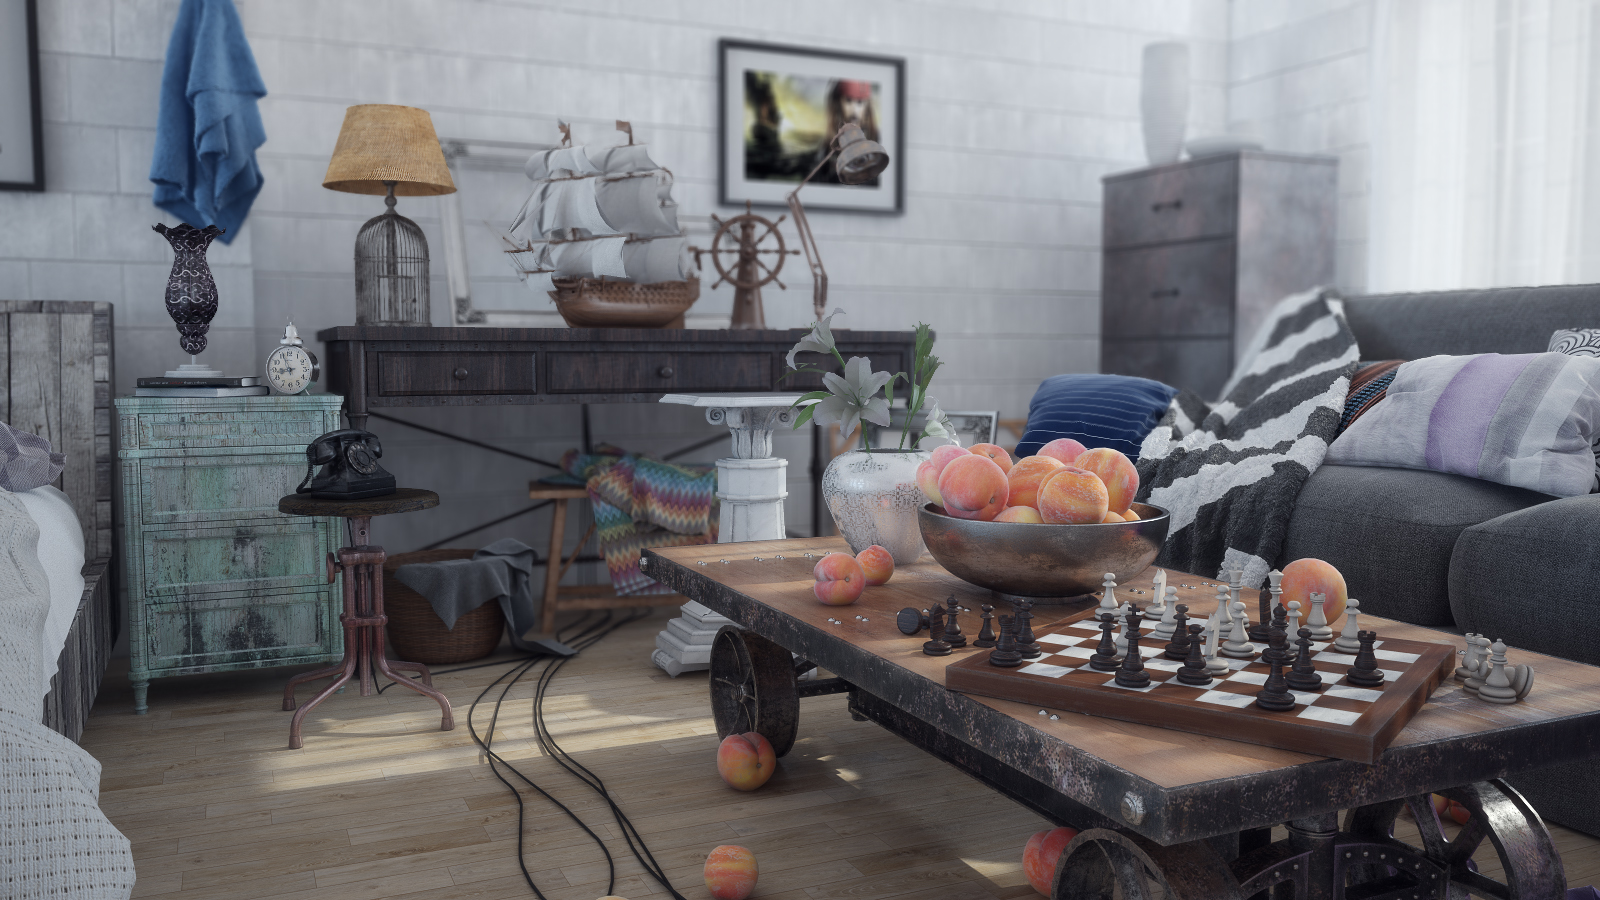 Realistic interior visualization in VrayForC4d , Industrial style room